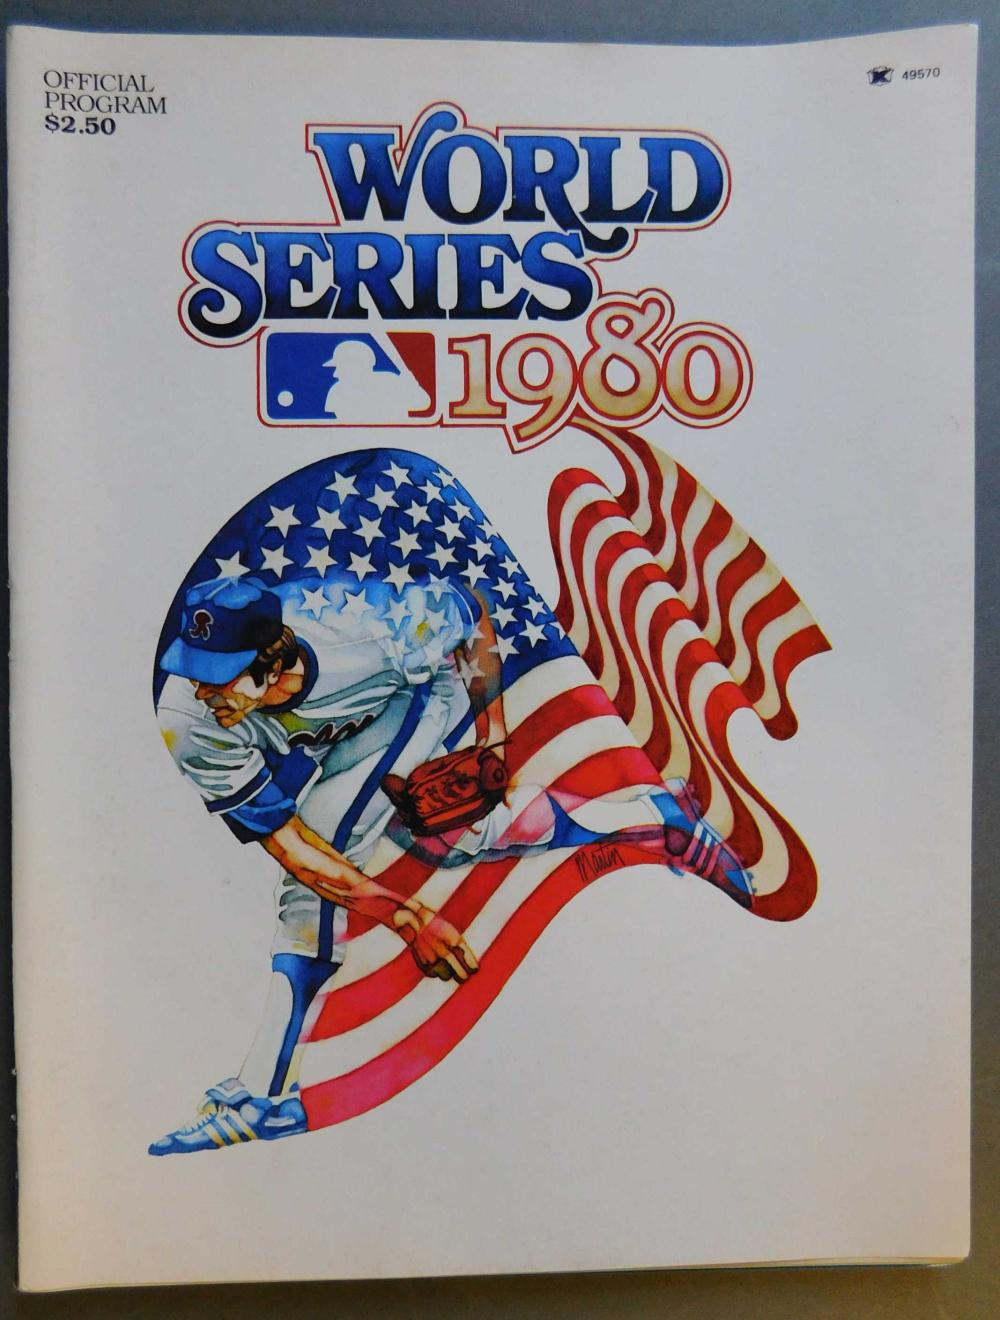 World Series 1980 - program signed by players.